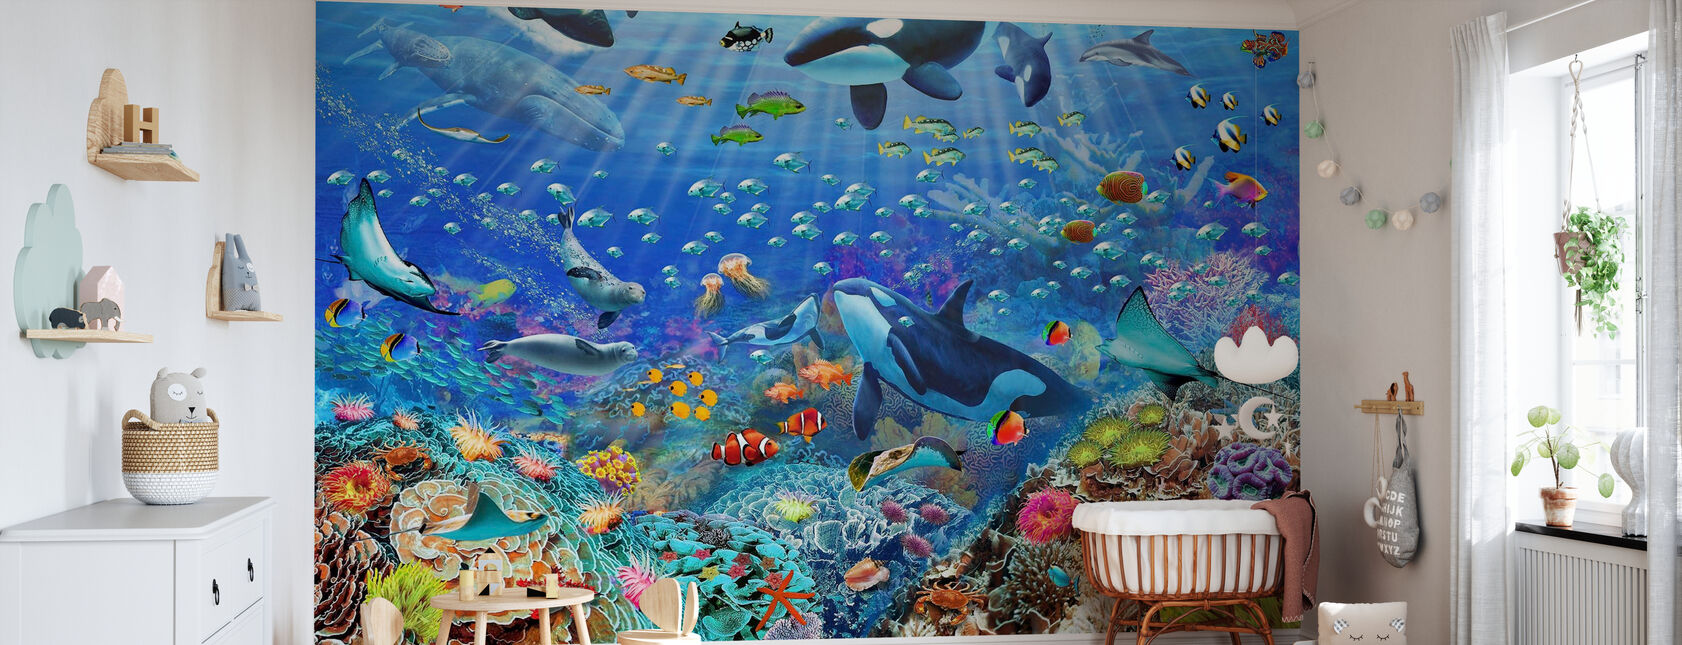 Underwater Scene - Wallpaper - Nursery